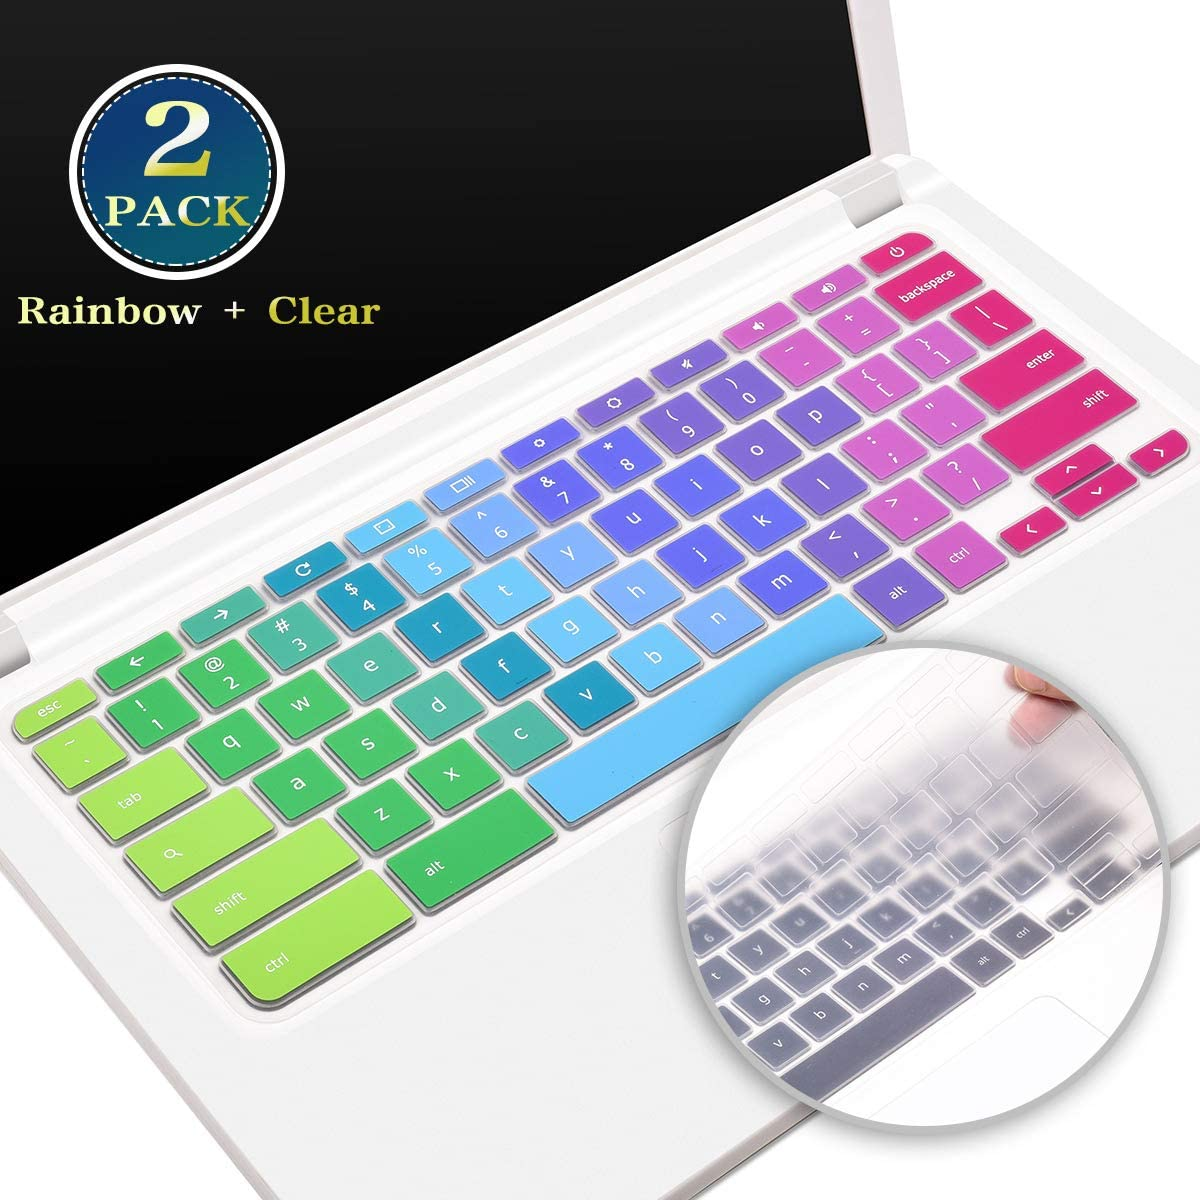 2 Pack Acer Chromebook 15 Keyboard Cover Skin for 15.6 Inch Acer Chromebook 15 CB5-571 CB3-532 CB3-531 Series, 14 Inch Acer Chromebook 14 CB3-431 CP5-471 Series Protector(Rainbow+Clear)